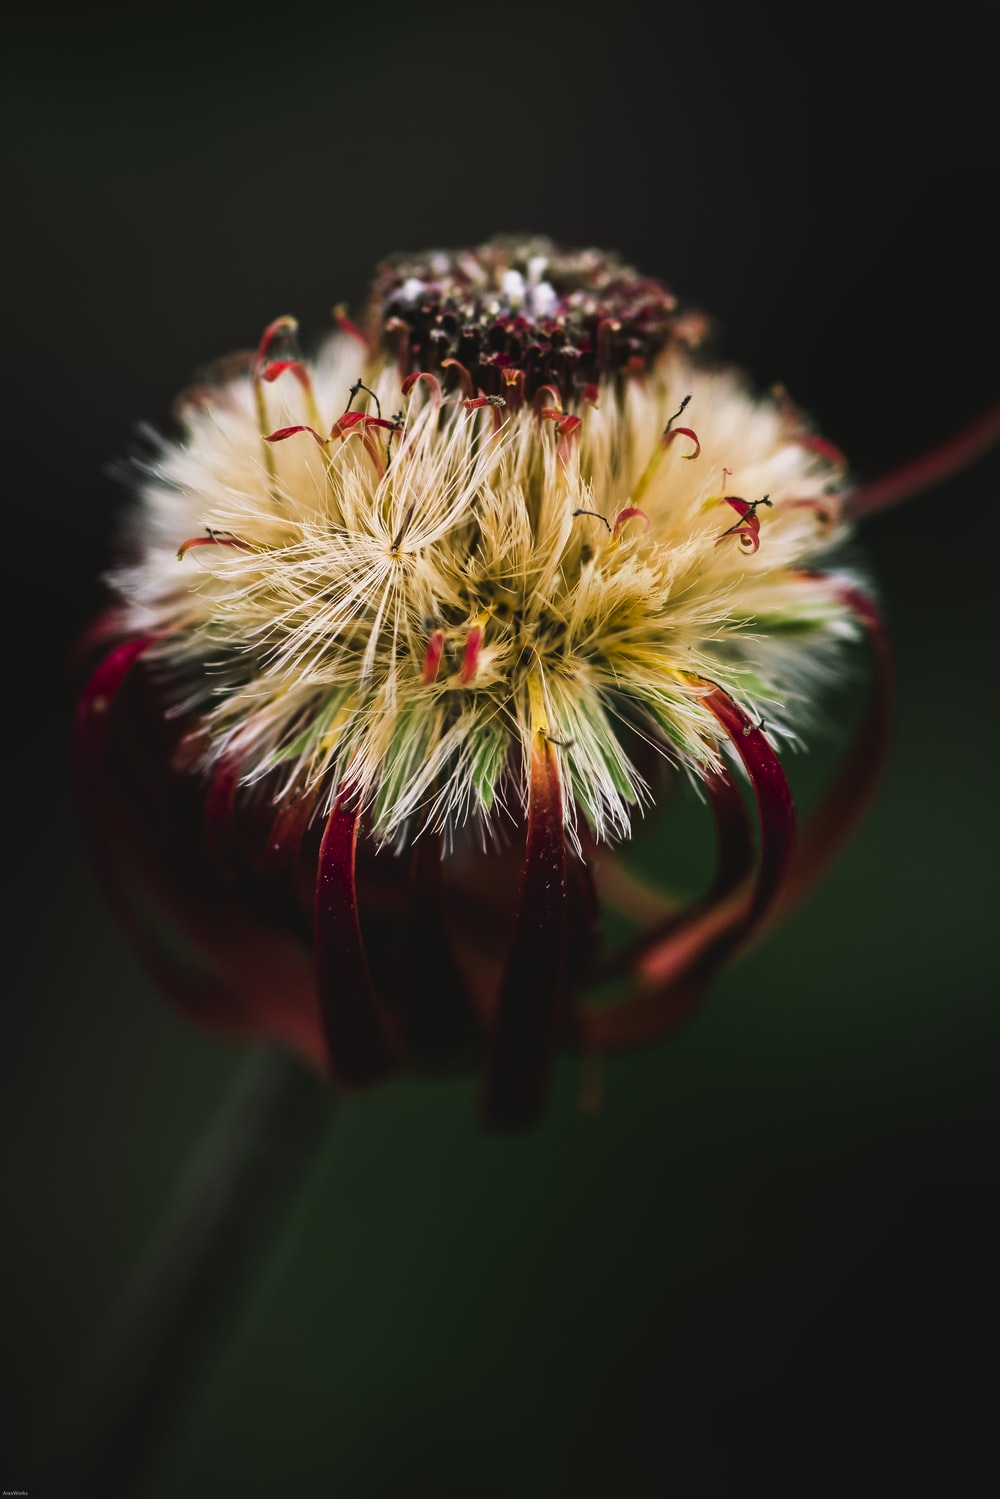 close-up photography of white and red flower